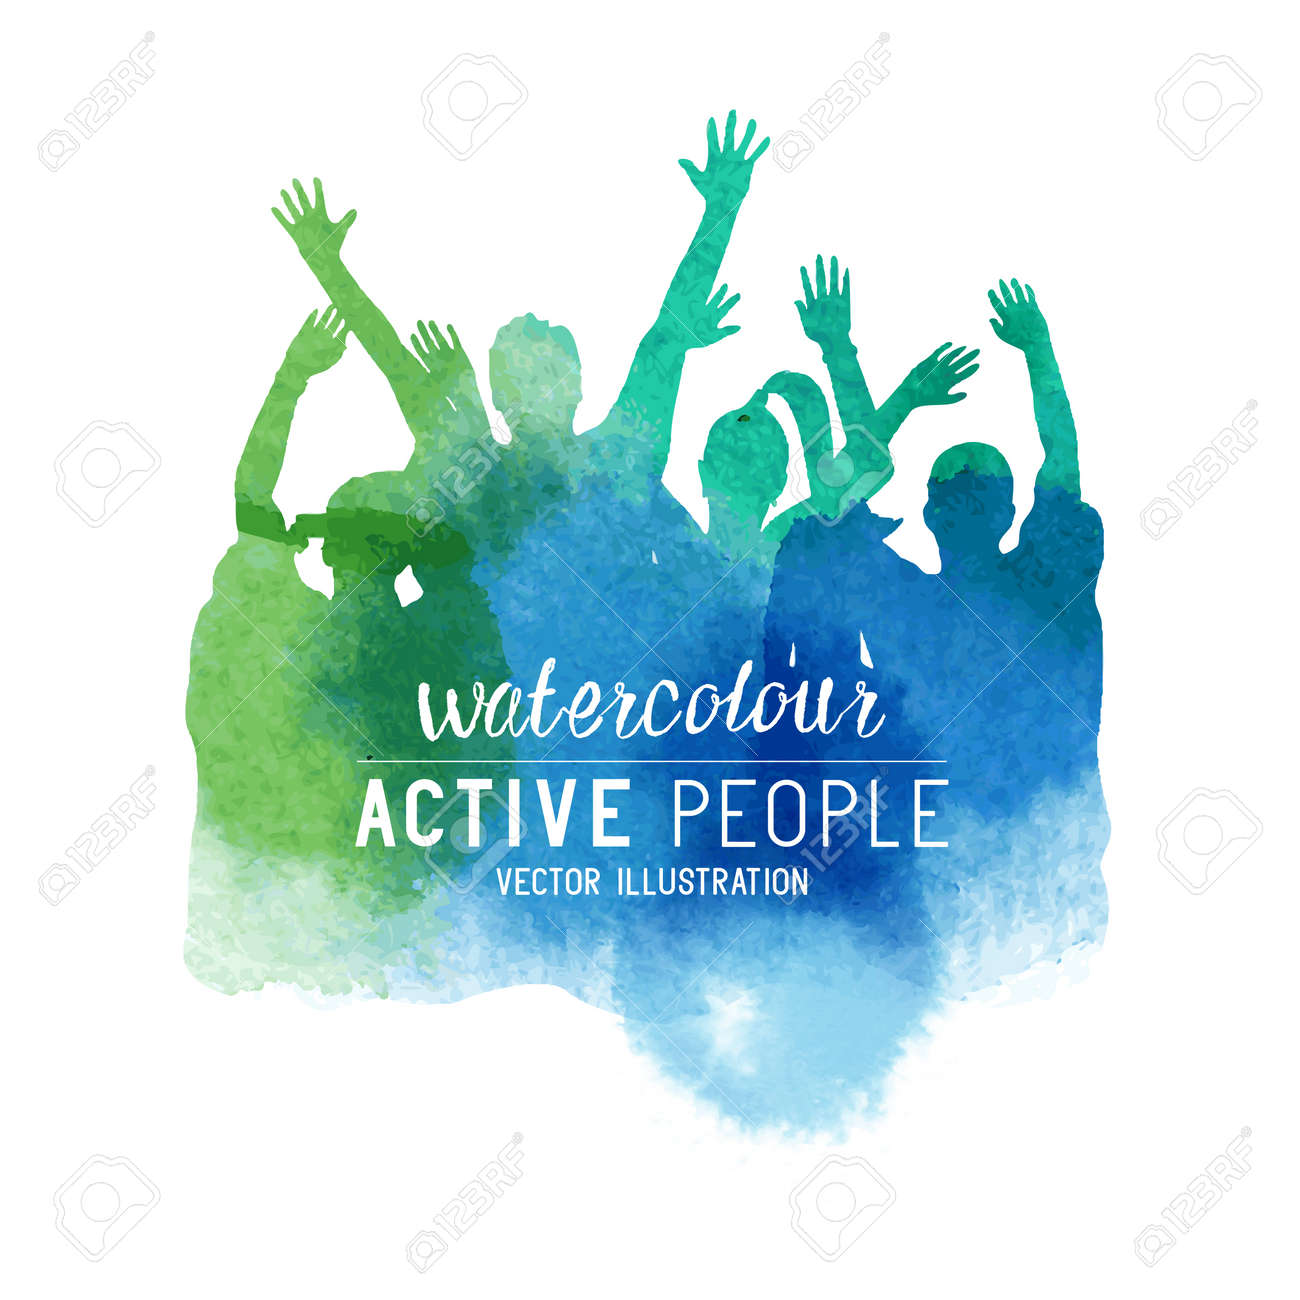 Watercolour Cheering Crowd of People. Group of people in watercolour effect, vector illustration. - 55683594